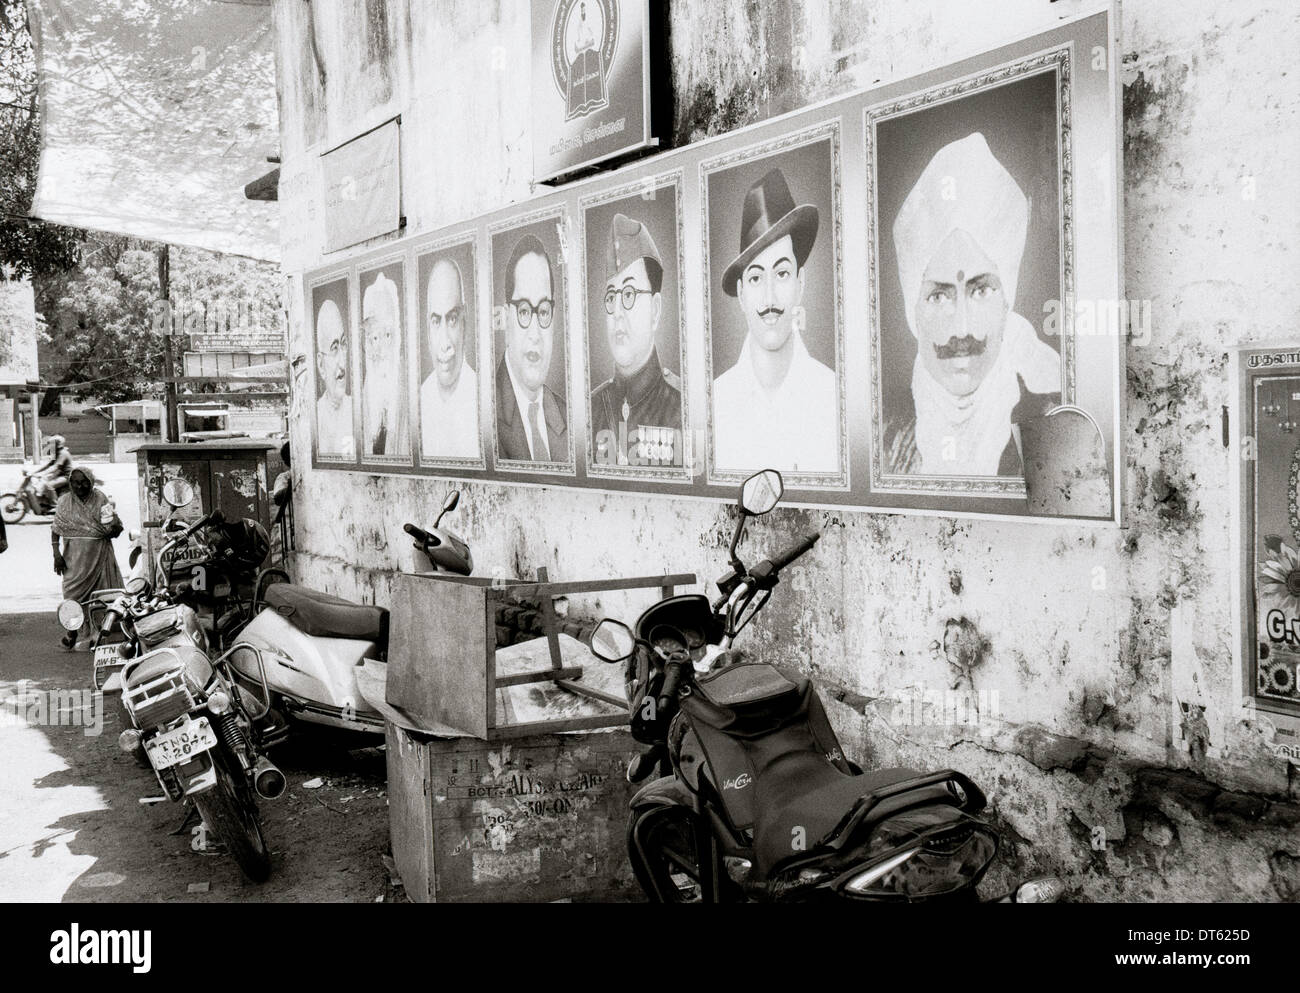 Indian historical heroes Chennai Madras in Tamil Nadu in East india in South Asia. History Historic Gandhi Portrait Portraiture Hero Reportage Travel - Stock Image